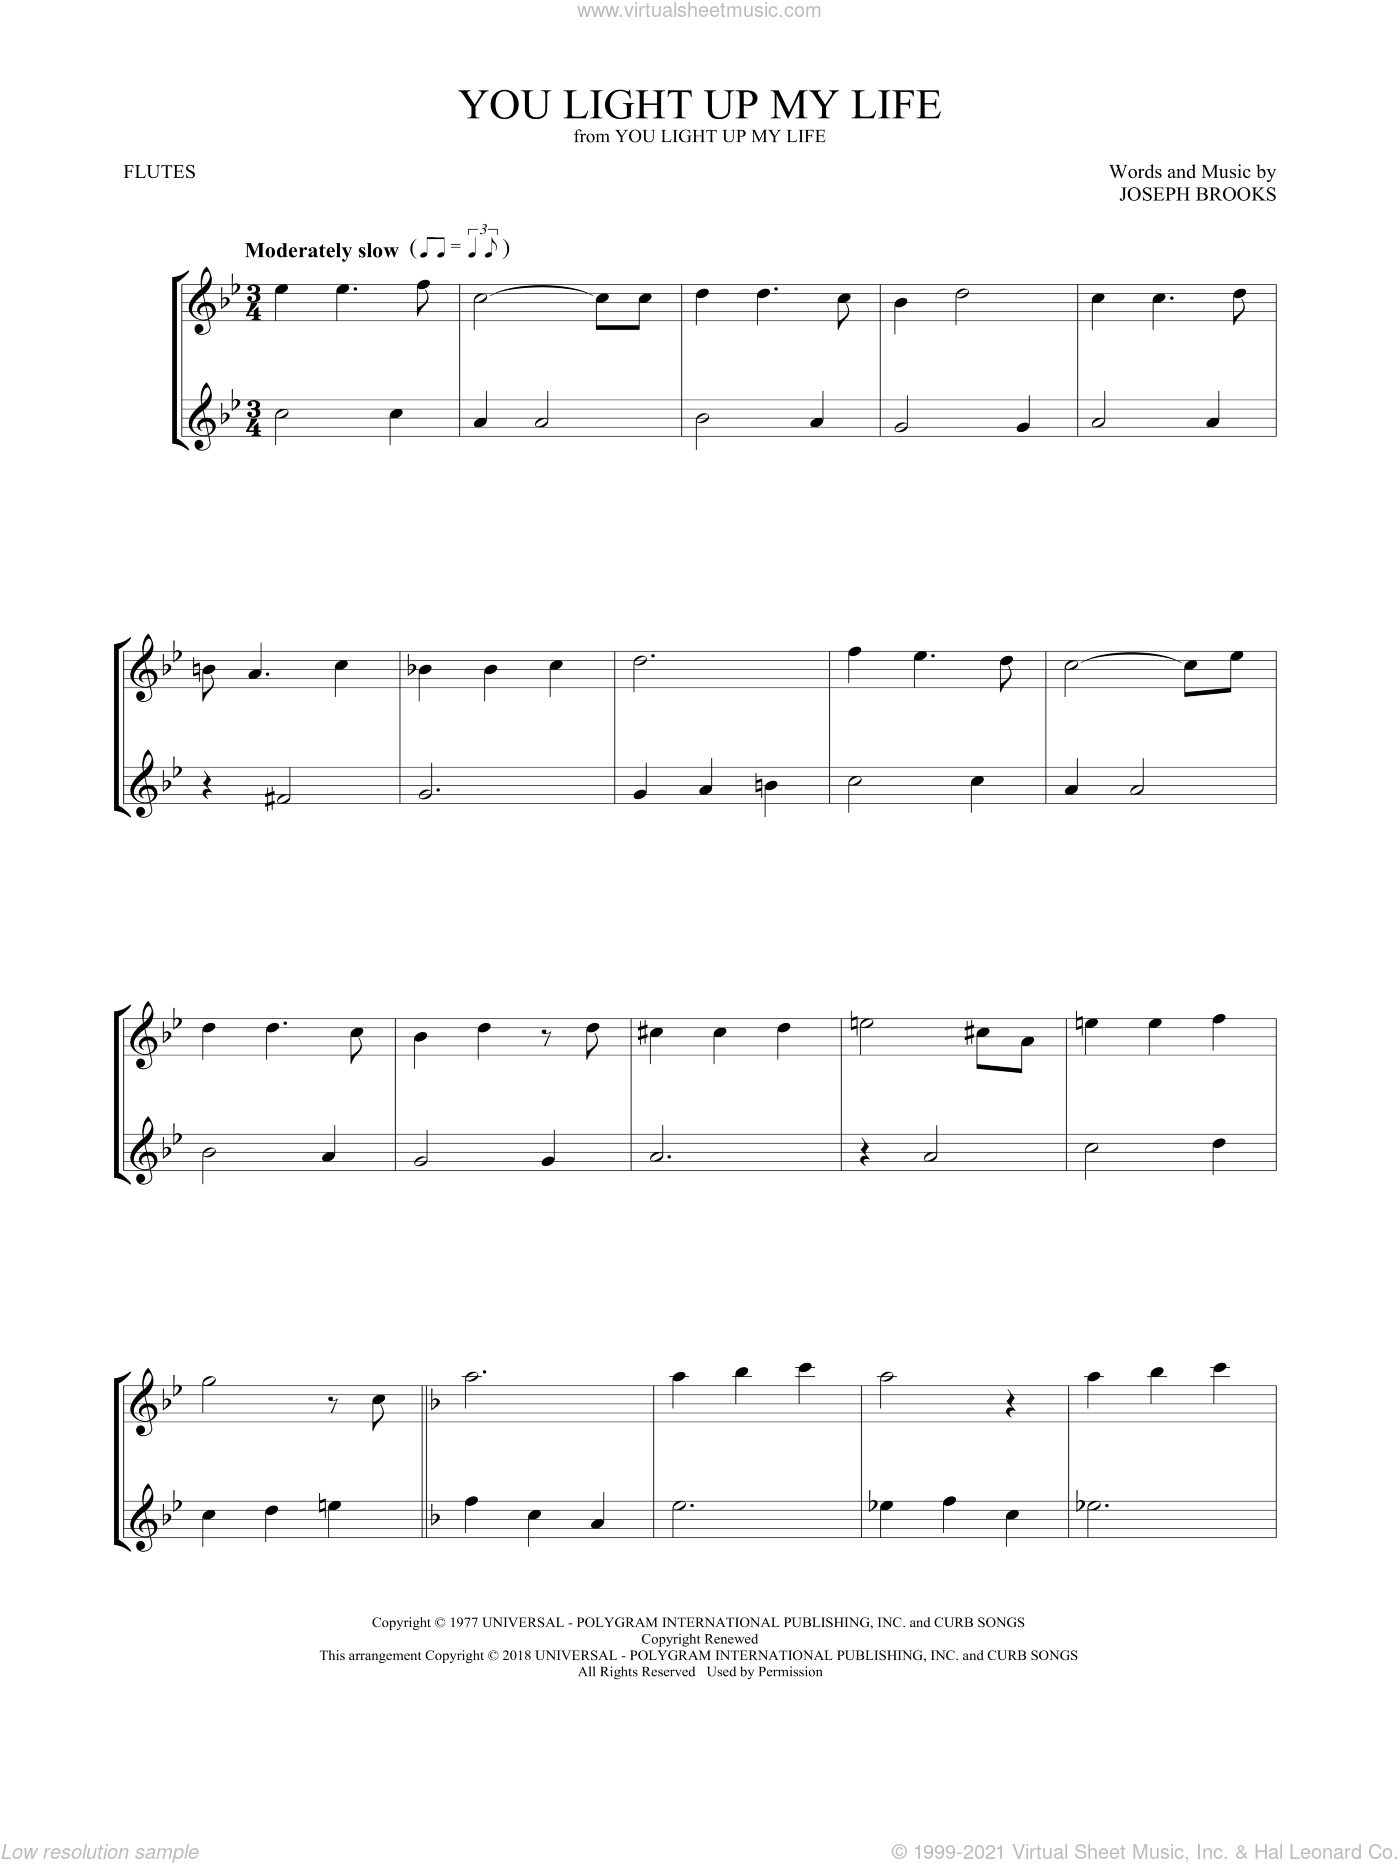 You Light Up My Life sheet music for two flutes (duets) by Debby Boone and Joseph Brooks, intermediate skill level